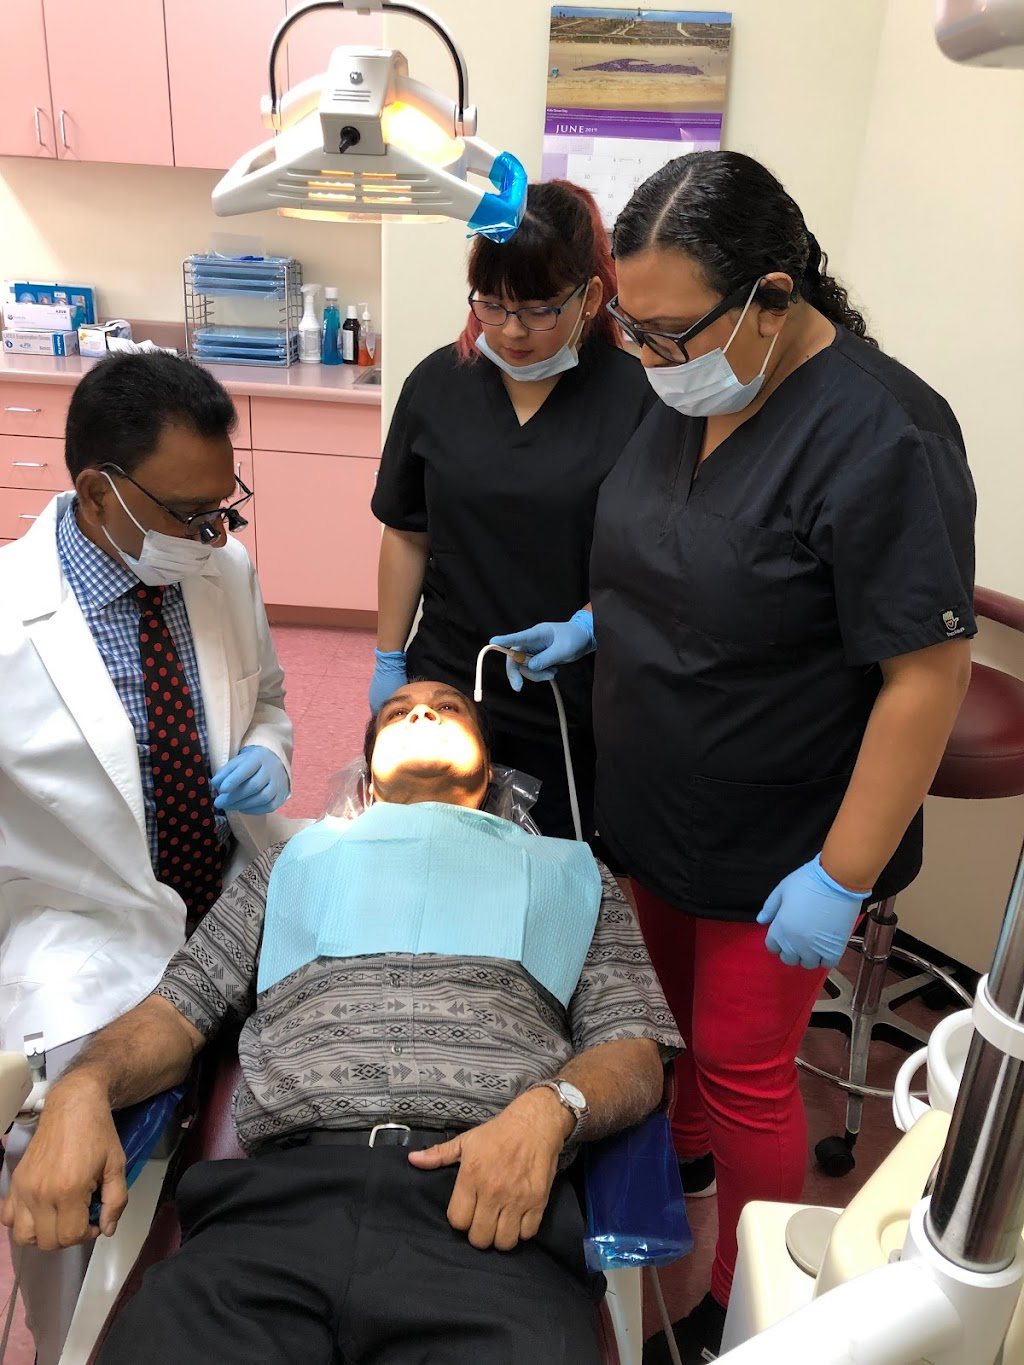 Vermont Dental - dentist  | Photo 4 of 9 | Address: 1133 S Vermont Ave Suite 14, Los Angeles, CA 90006, USA | Phone: (213) 487-6300